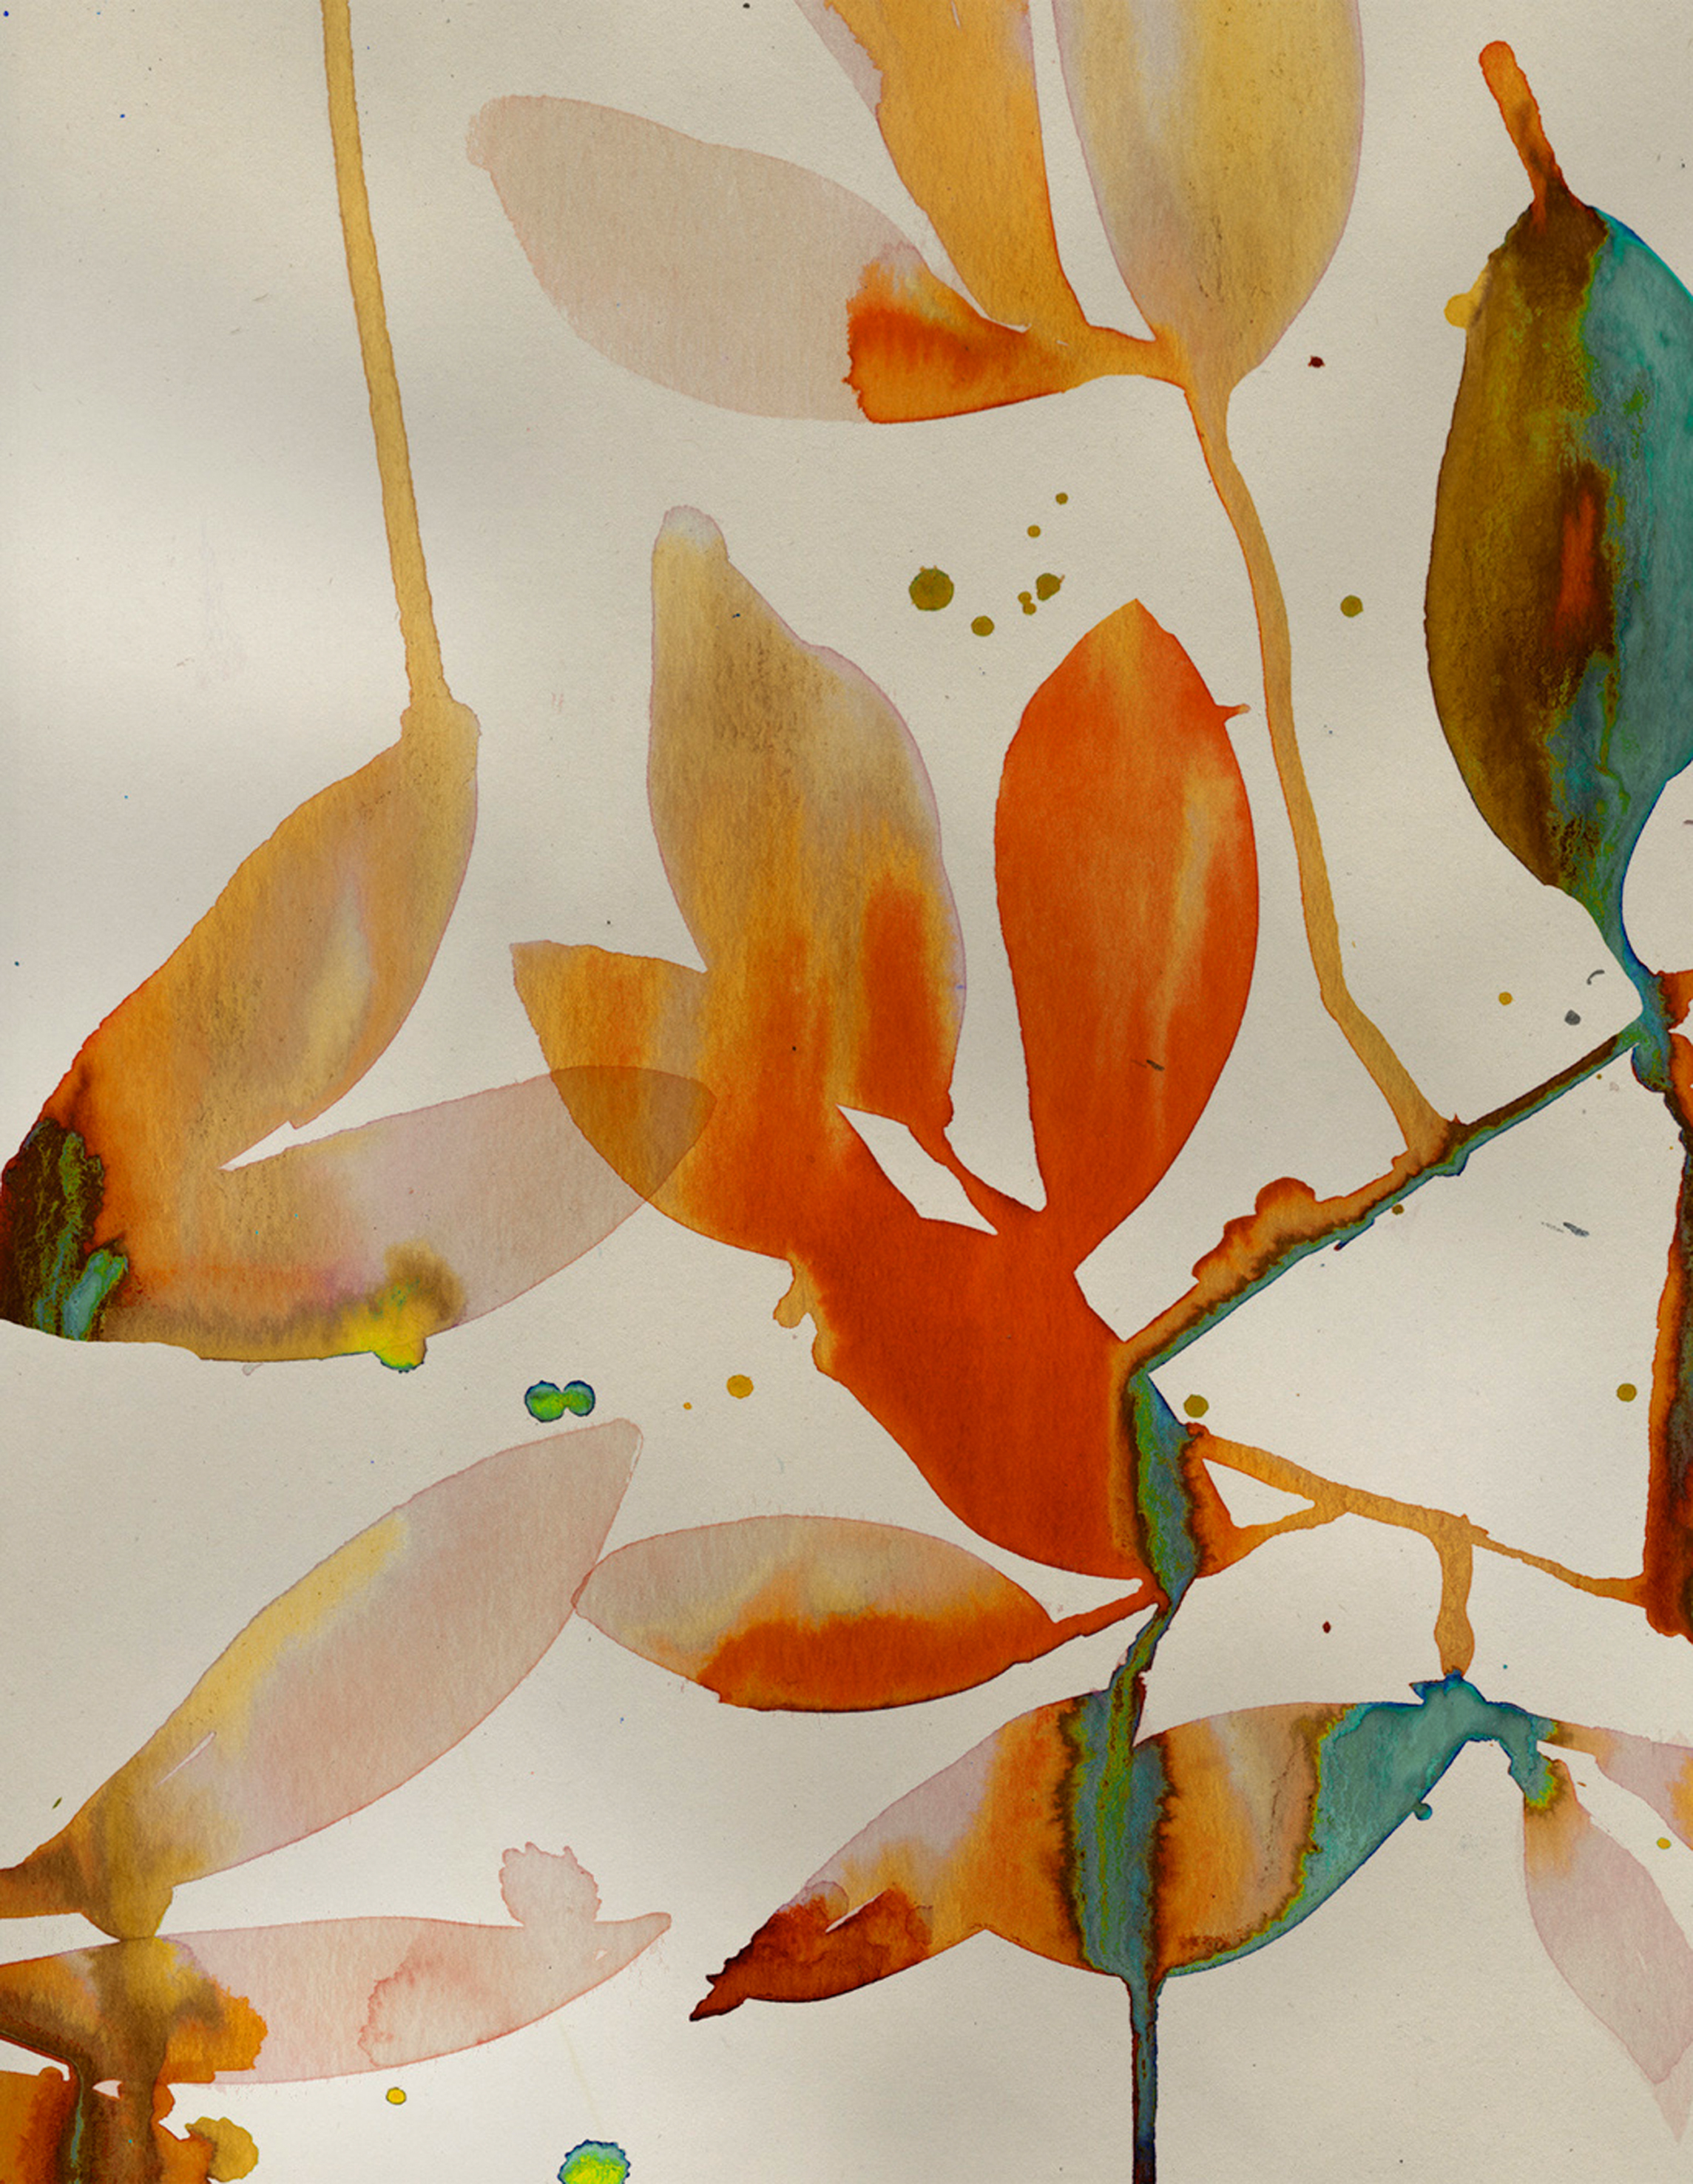 stina-persson-illustration-watercolor-lagom-design-fall-leaves.jpg